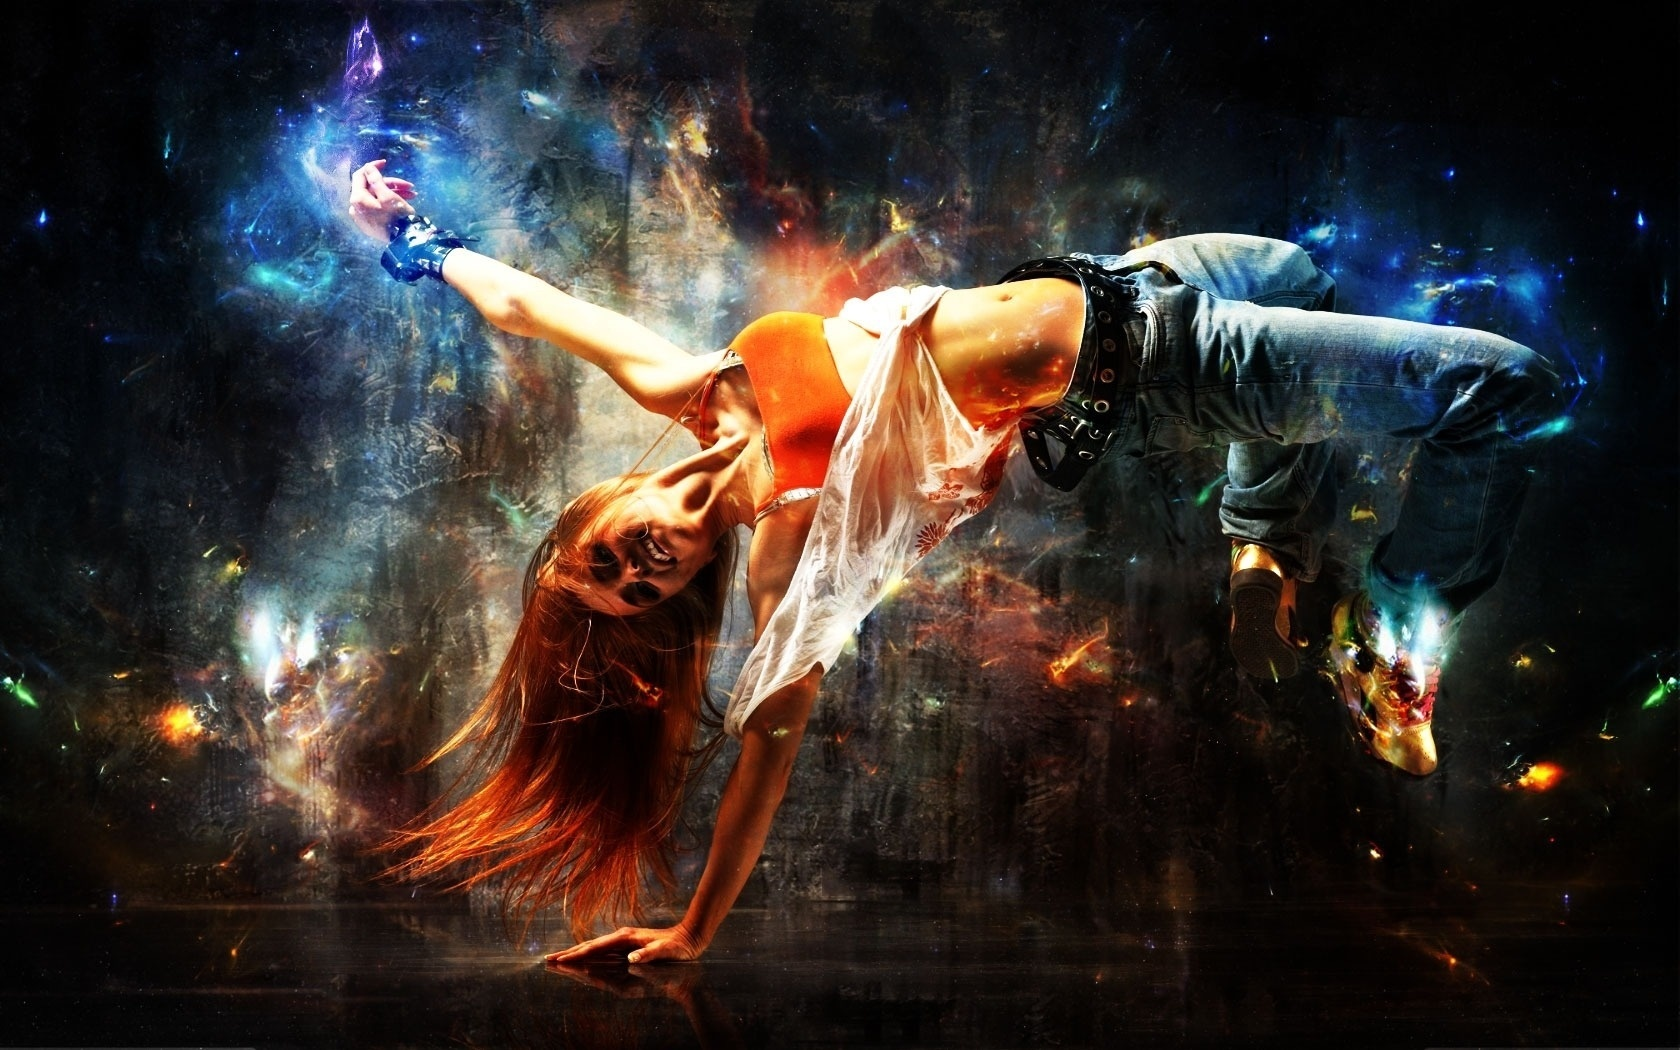 Dance Laptop Wallpapers: Best Artistic (Music) HD Wallpapersrs For Desktop